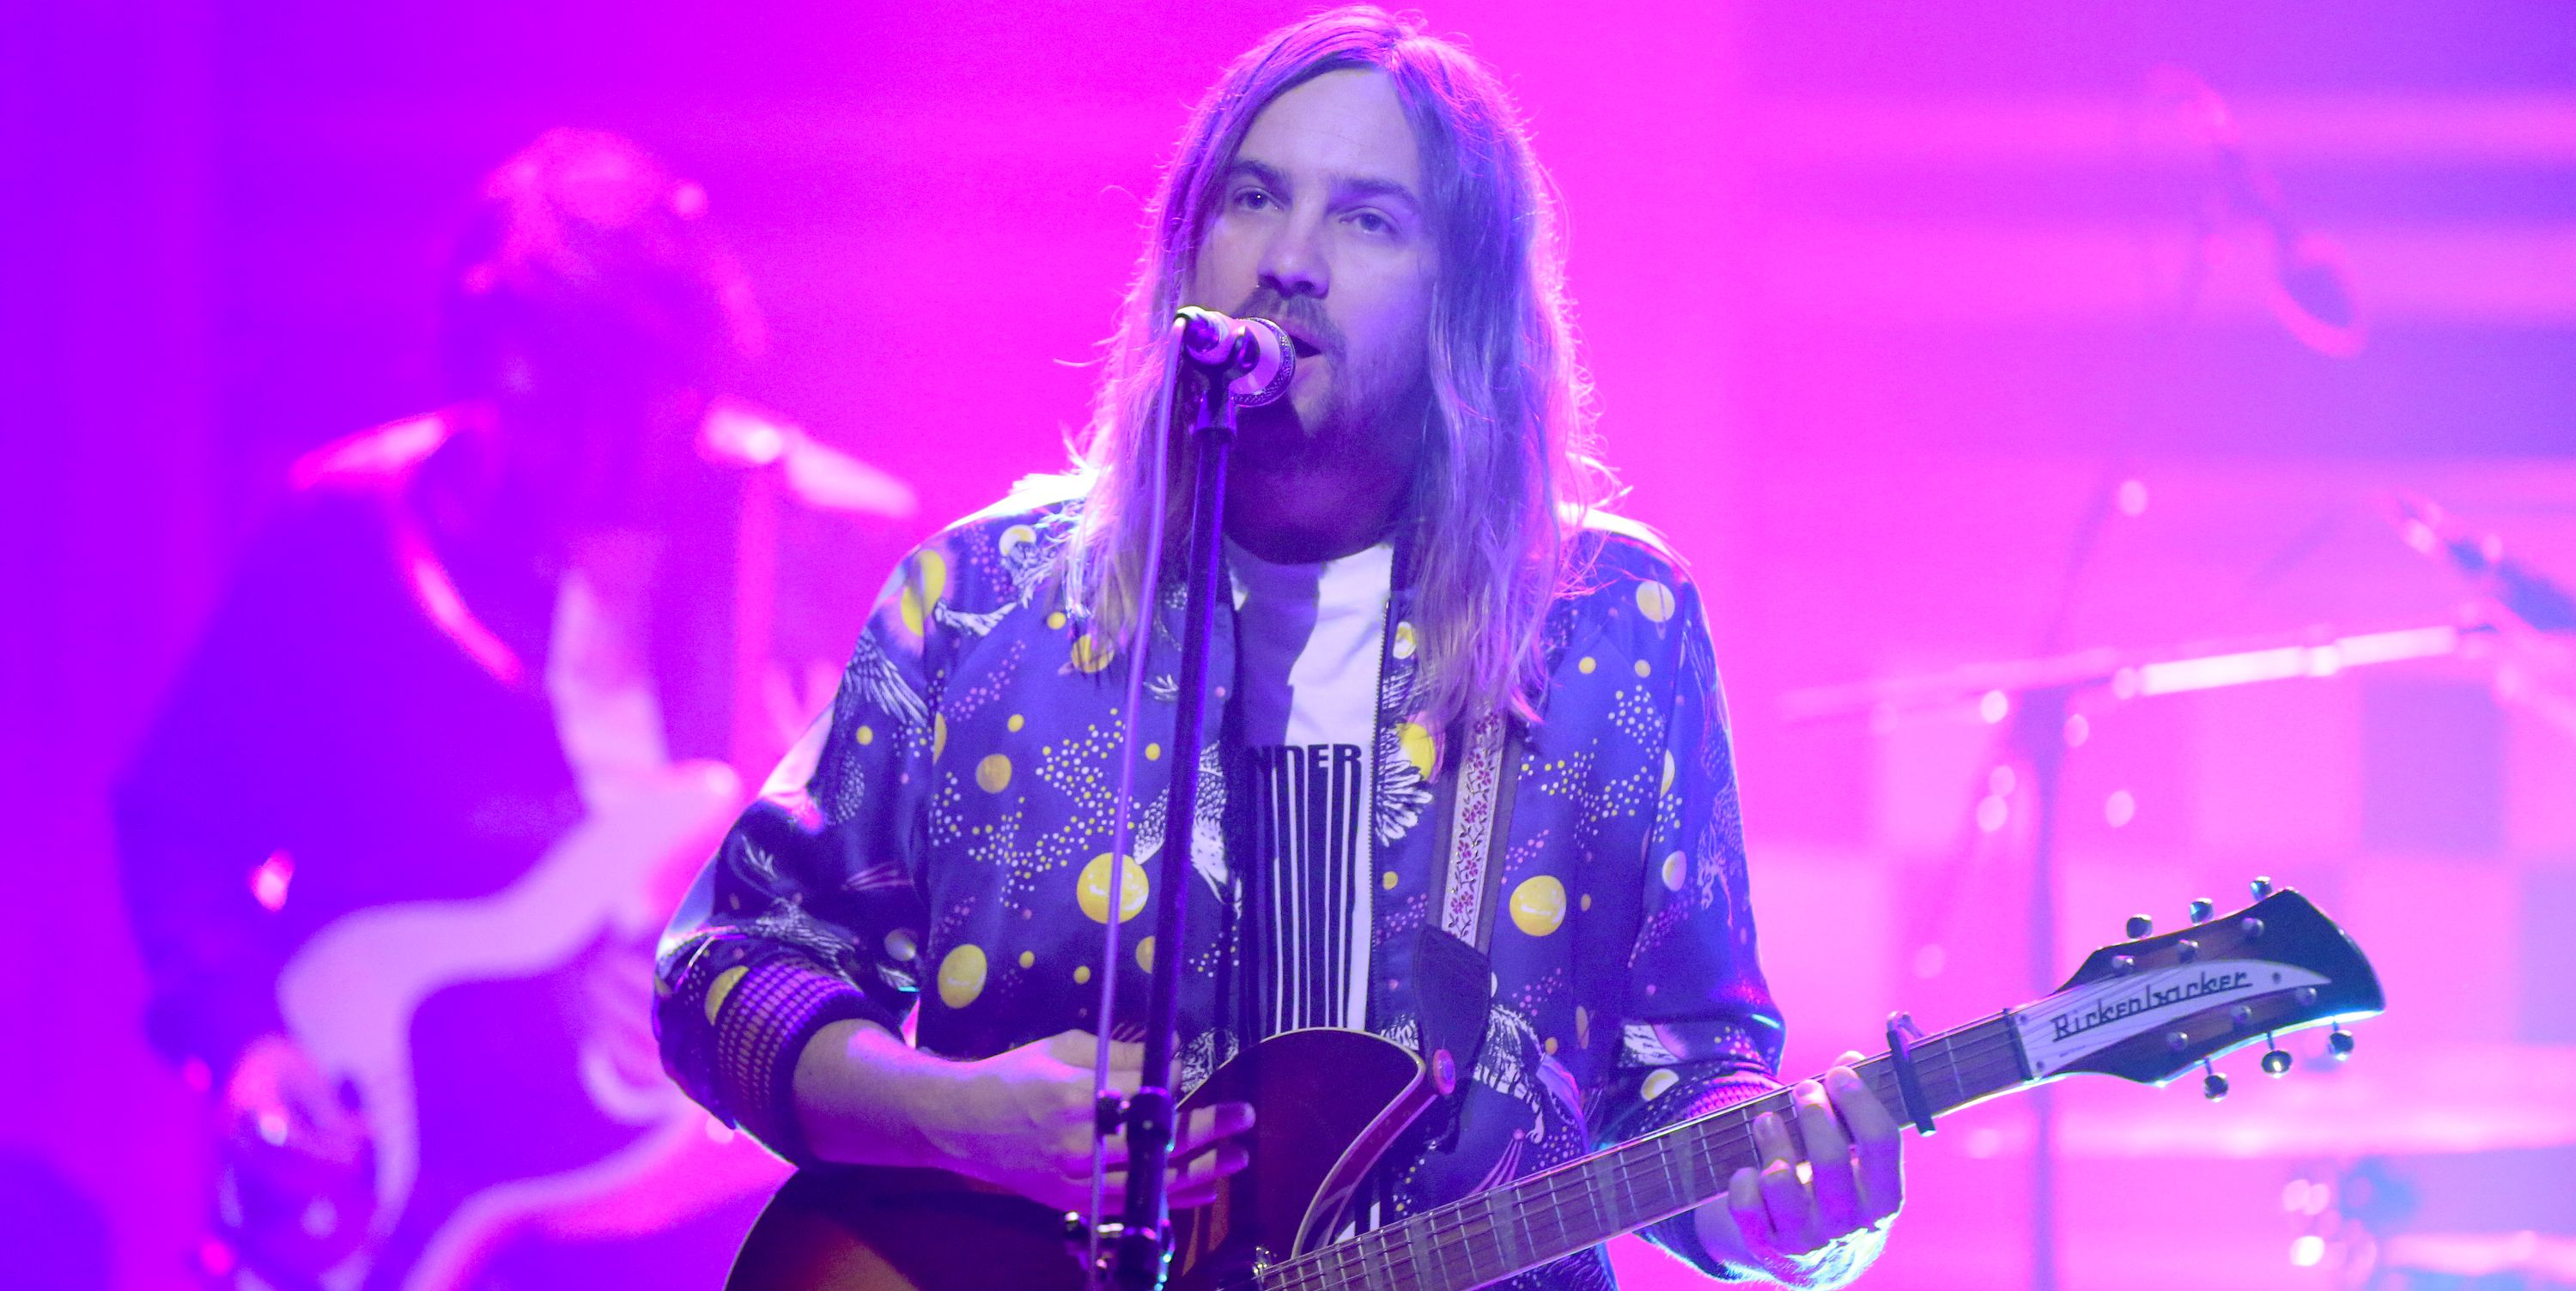 Who Is Tame Impala? — Everything To Know About Tame Impala, The Kevin Parker One-man-band Headlining Coachella 2019